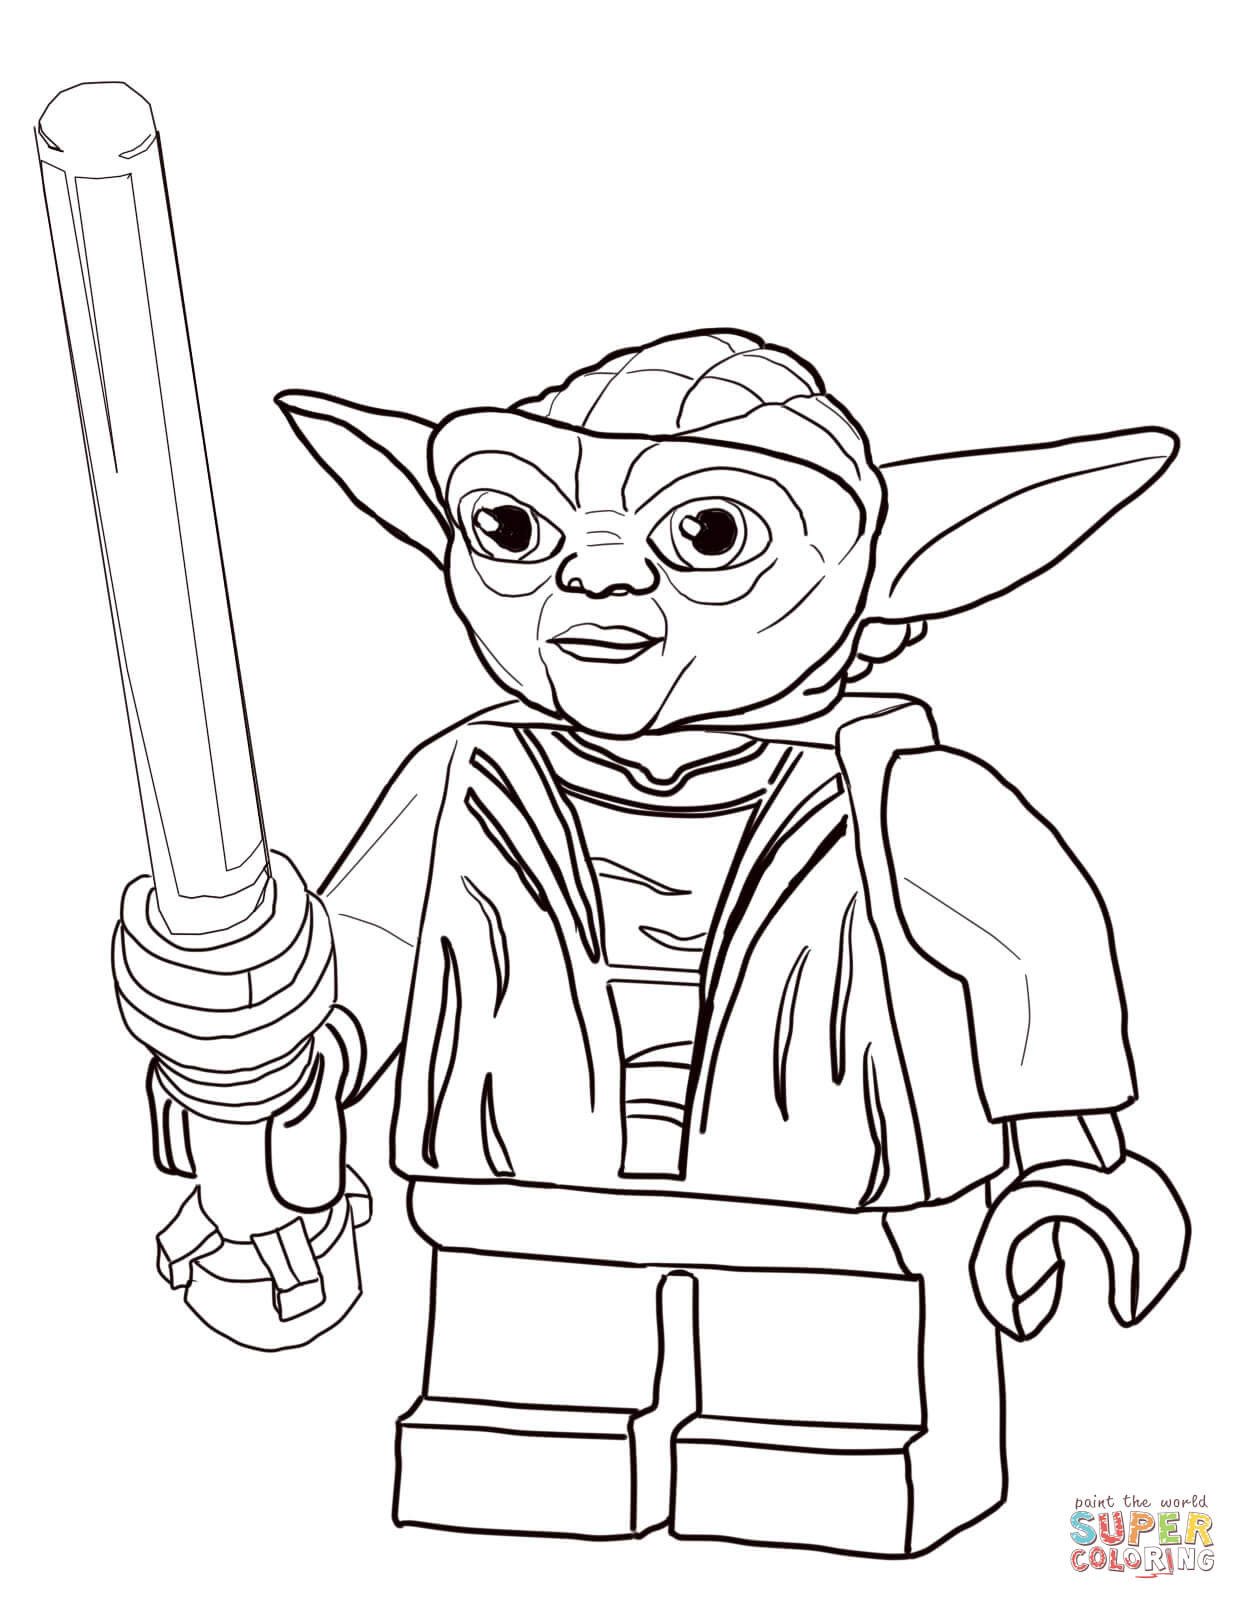 Lego Star Wars Coloring Pages  Lego Star Wars Master Yoda coloring page